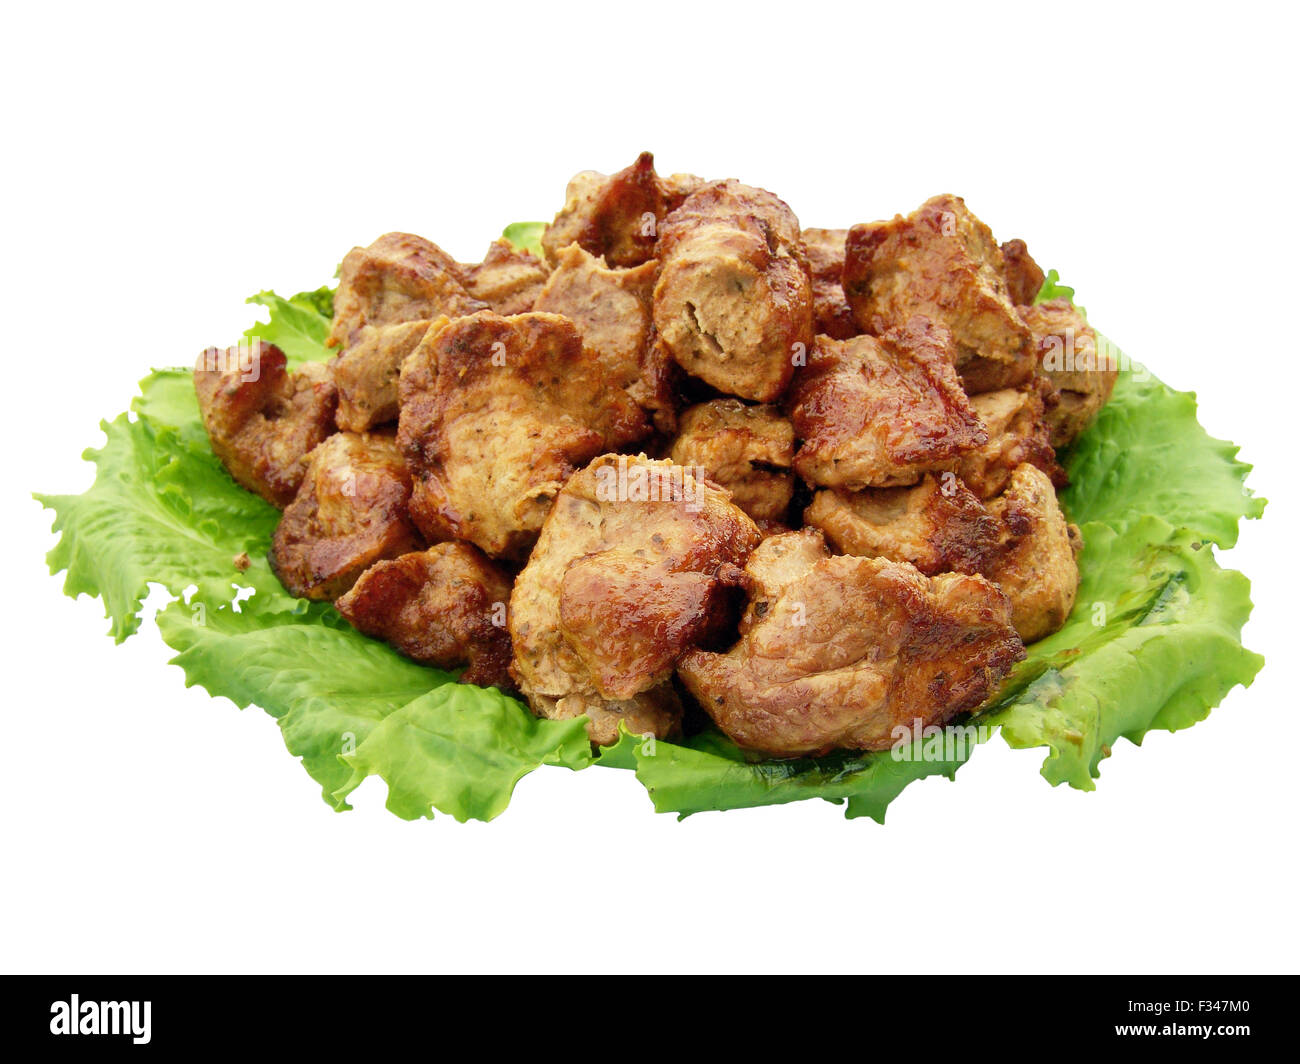 The shish kebab and greengrocery isolated on the white background - Stock Image